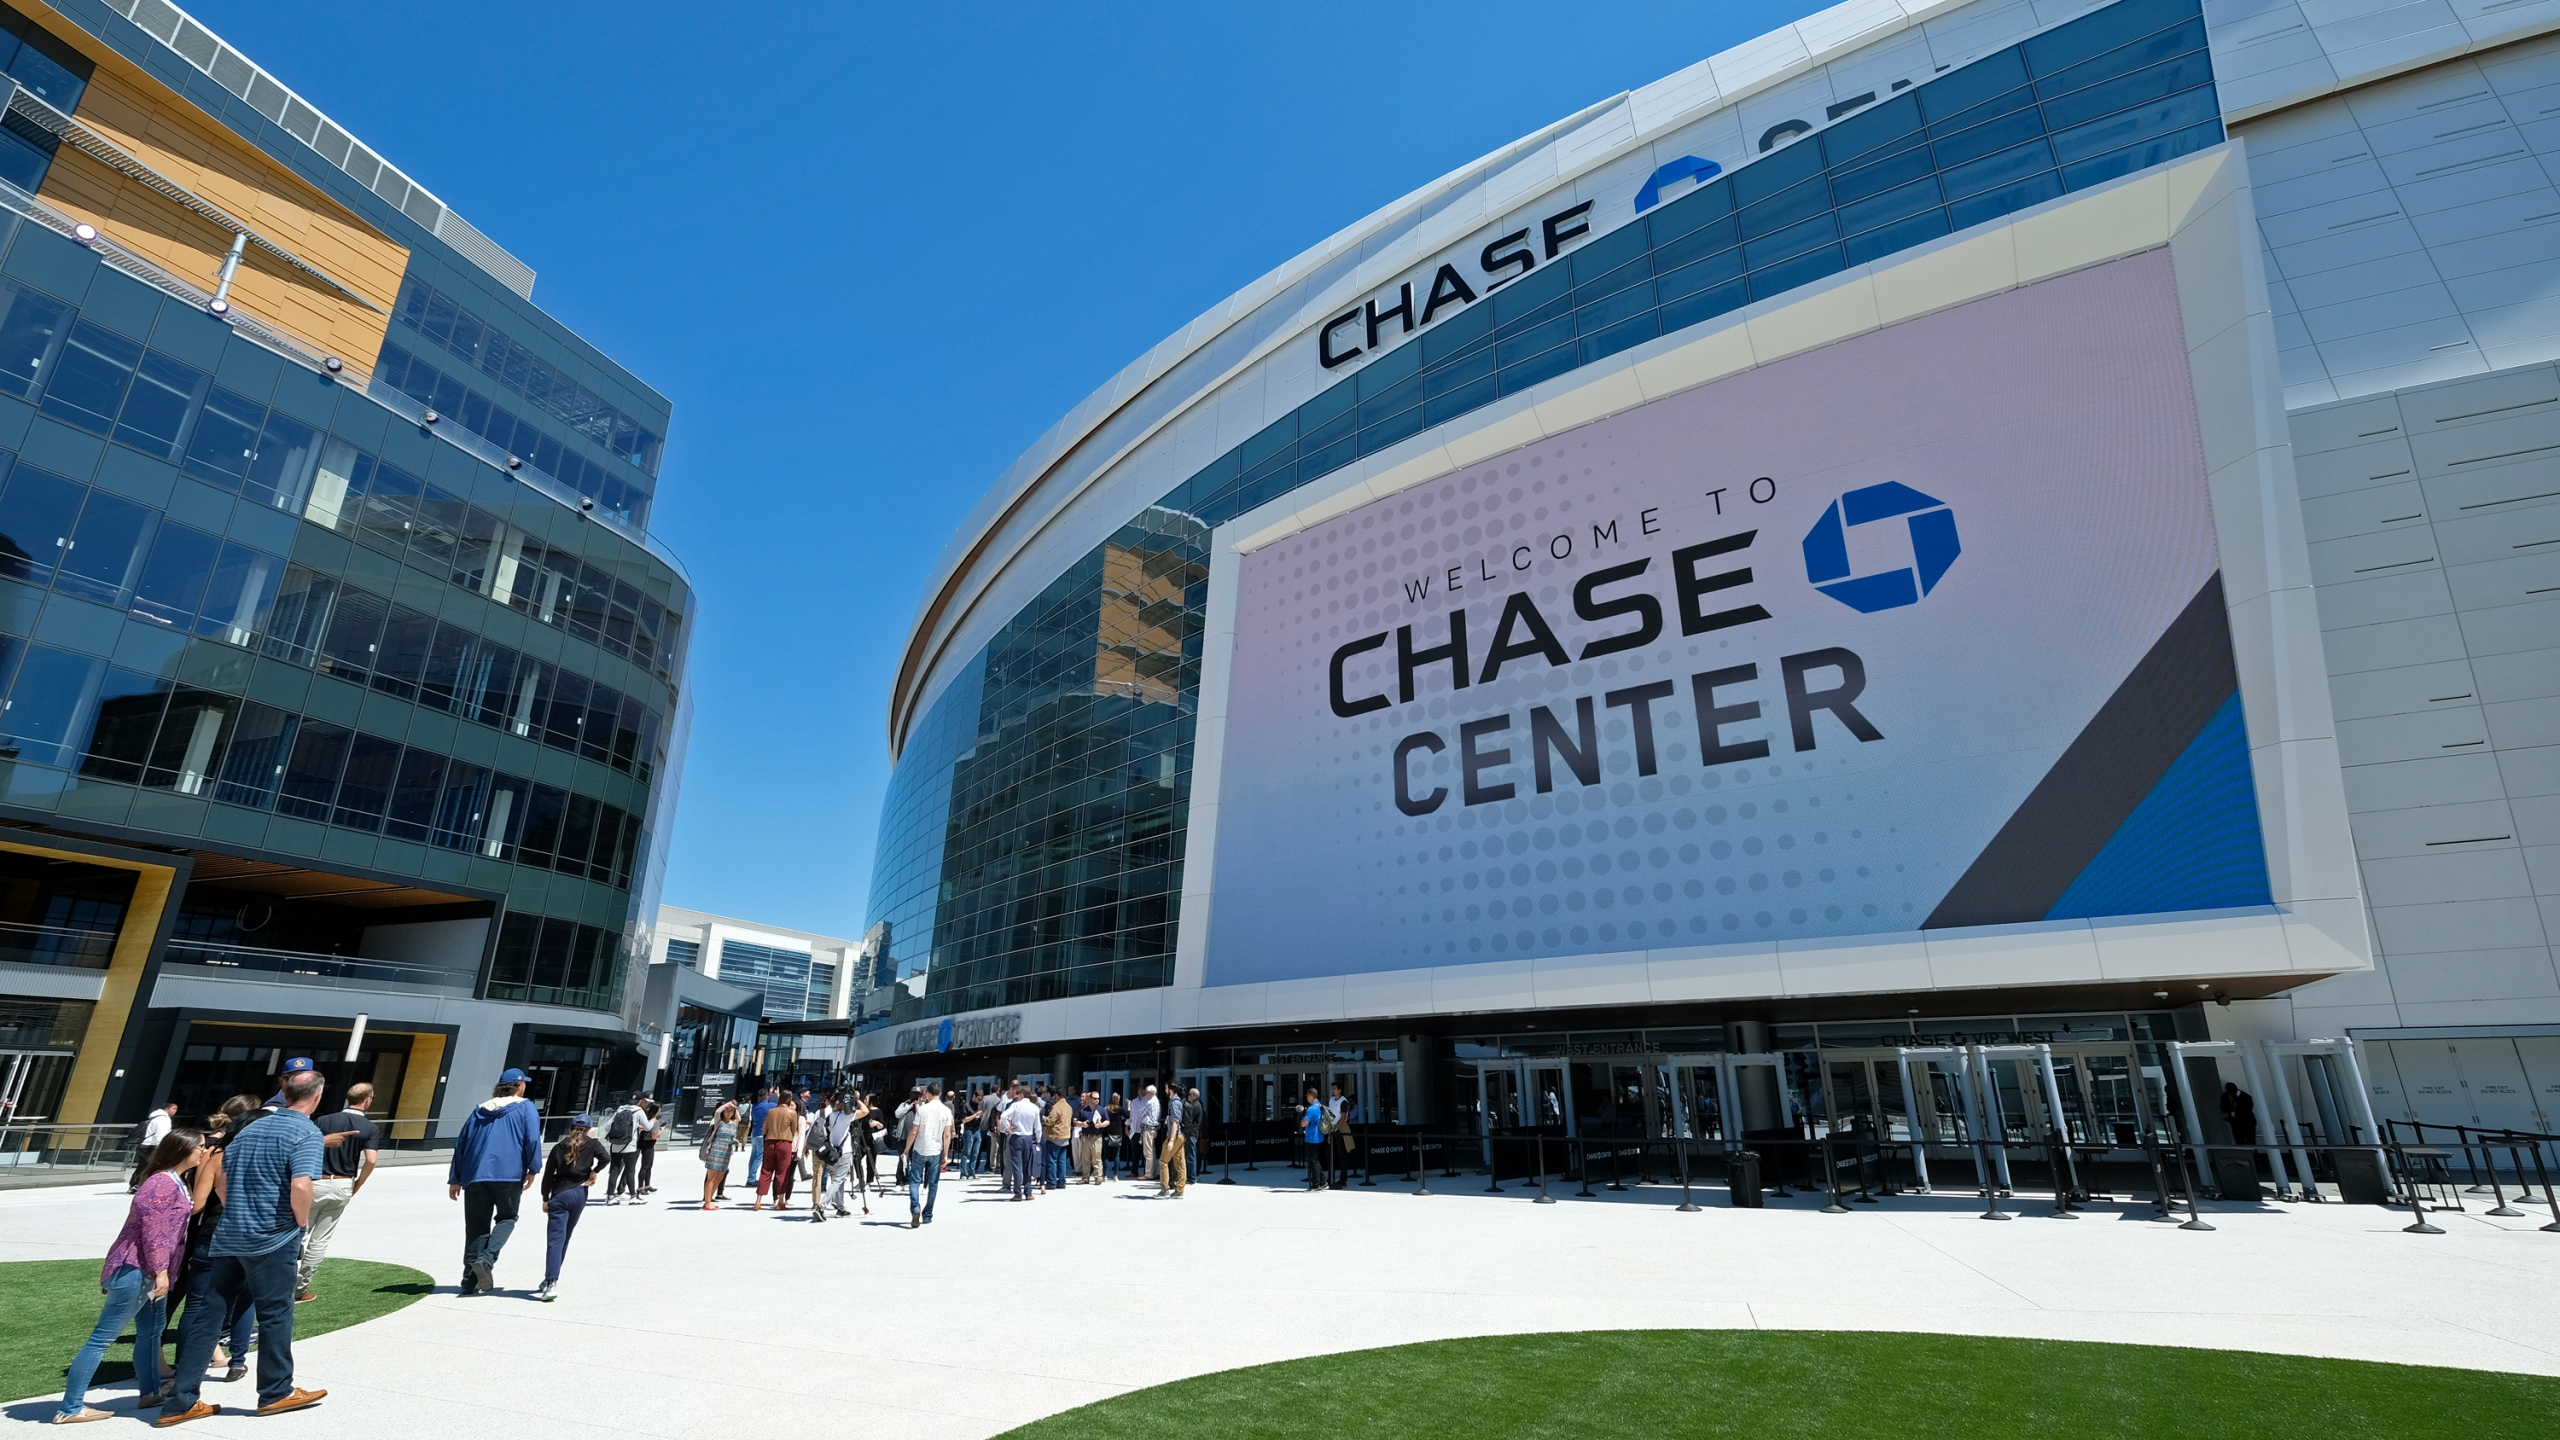 In this Aug. 26, 2019, file photo, people walk outside the Chase Center in San Francisco. (Eric Risberg/Associated Press)